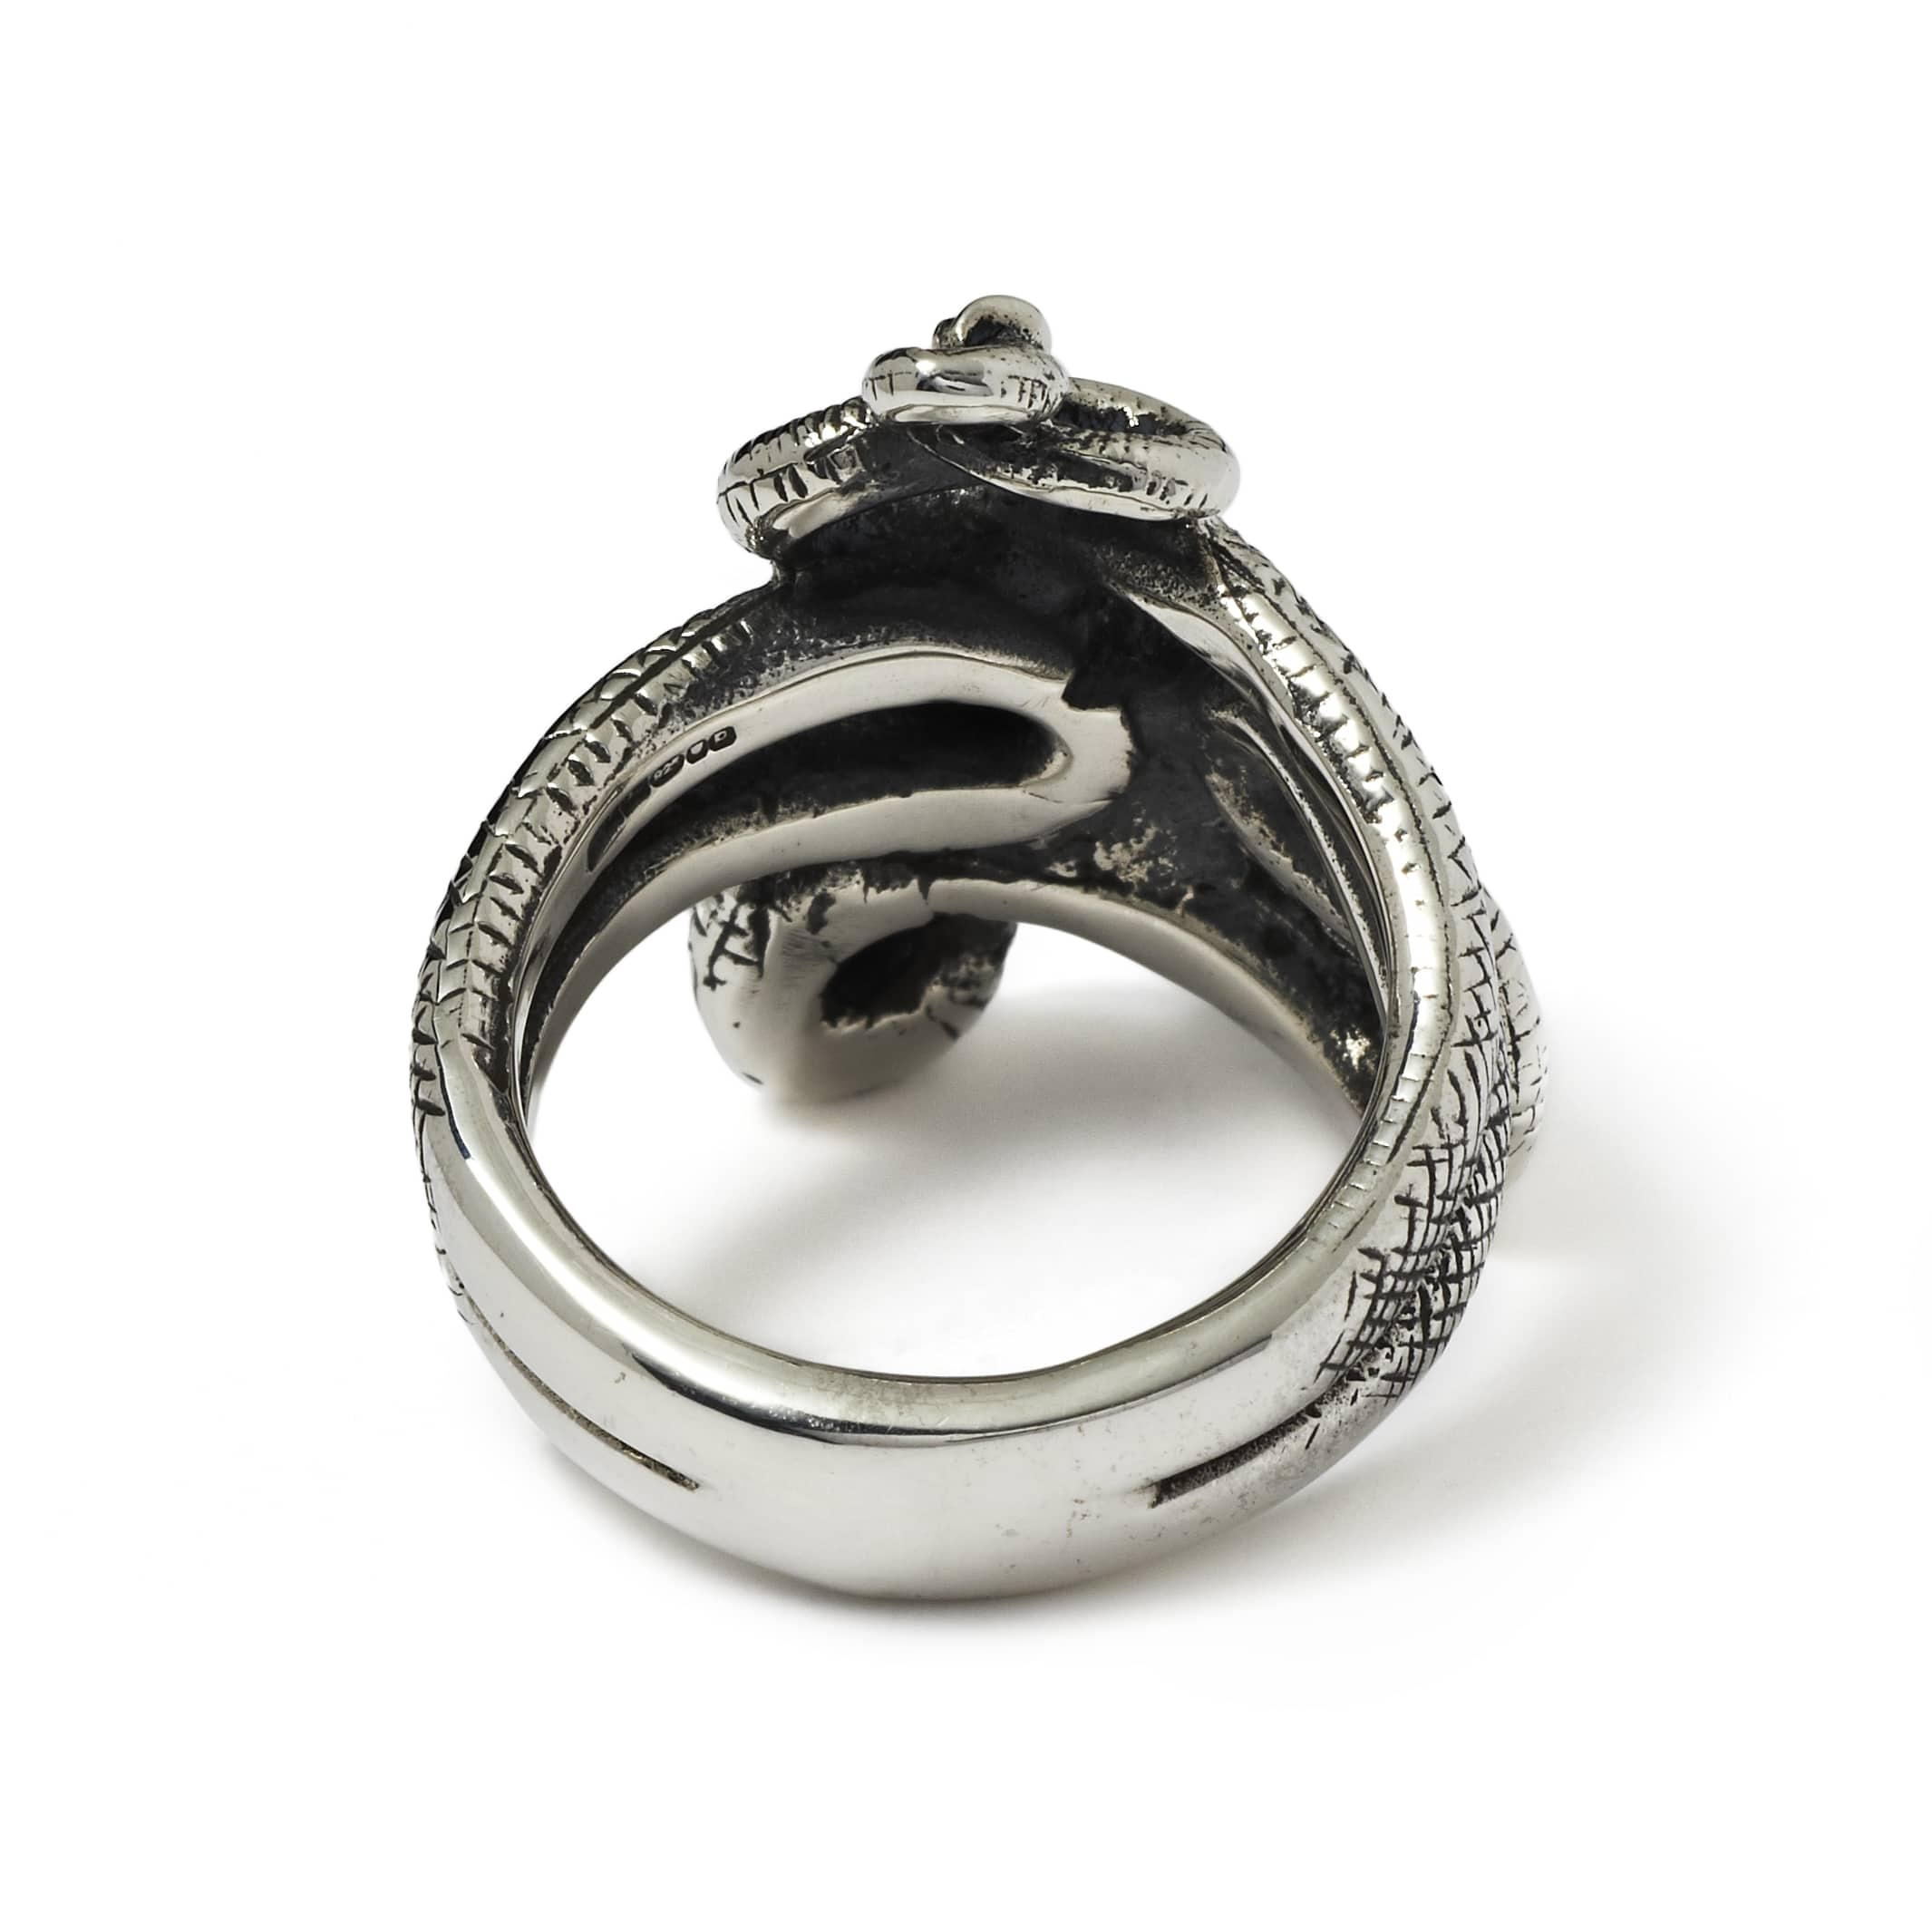 tail snake snakes ouroboros double serpent img products sweet rings ring rattle